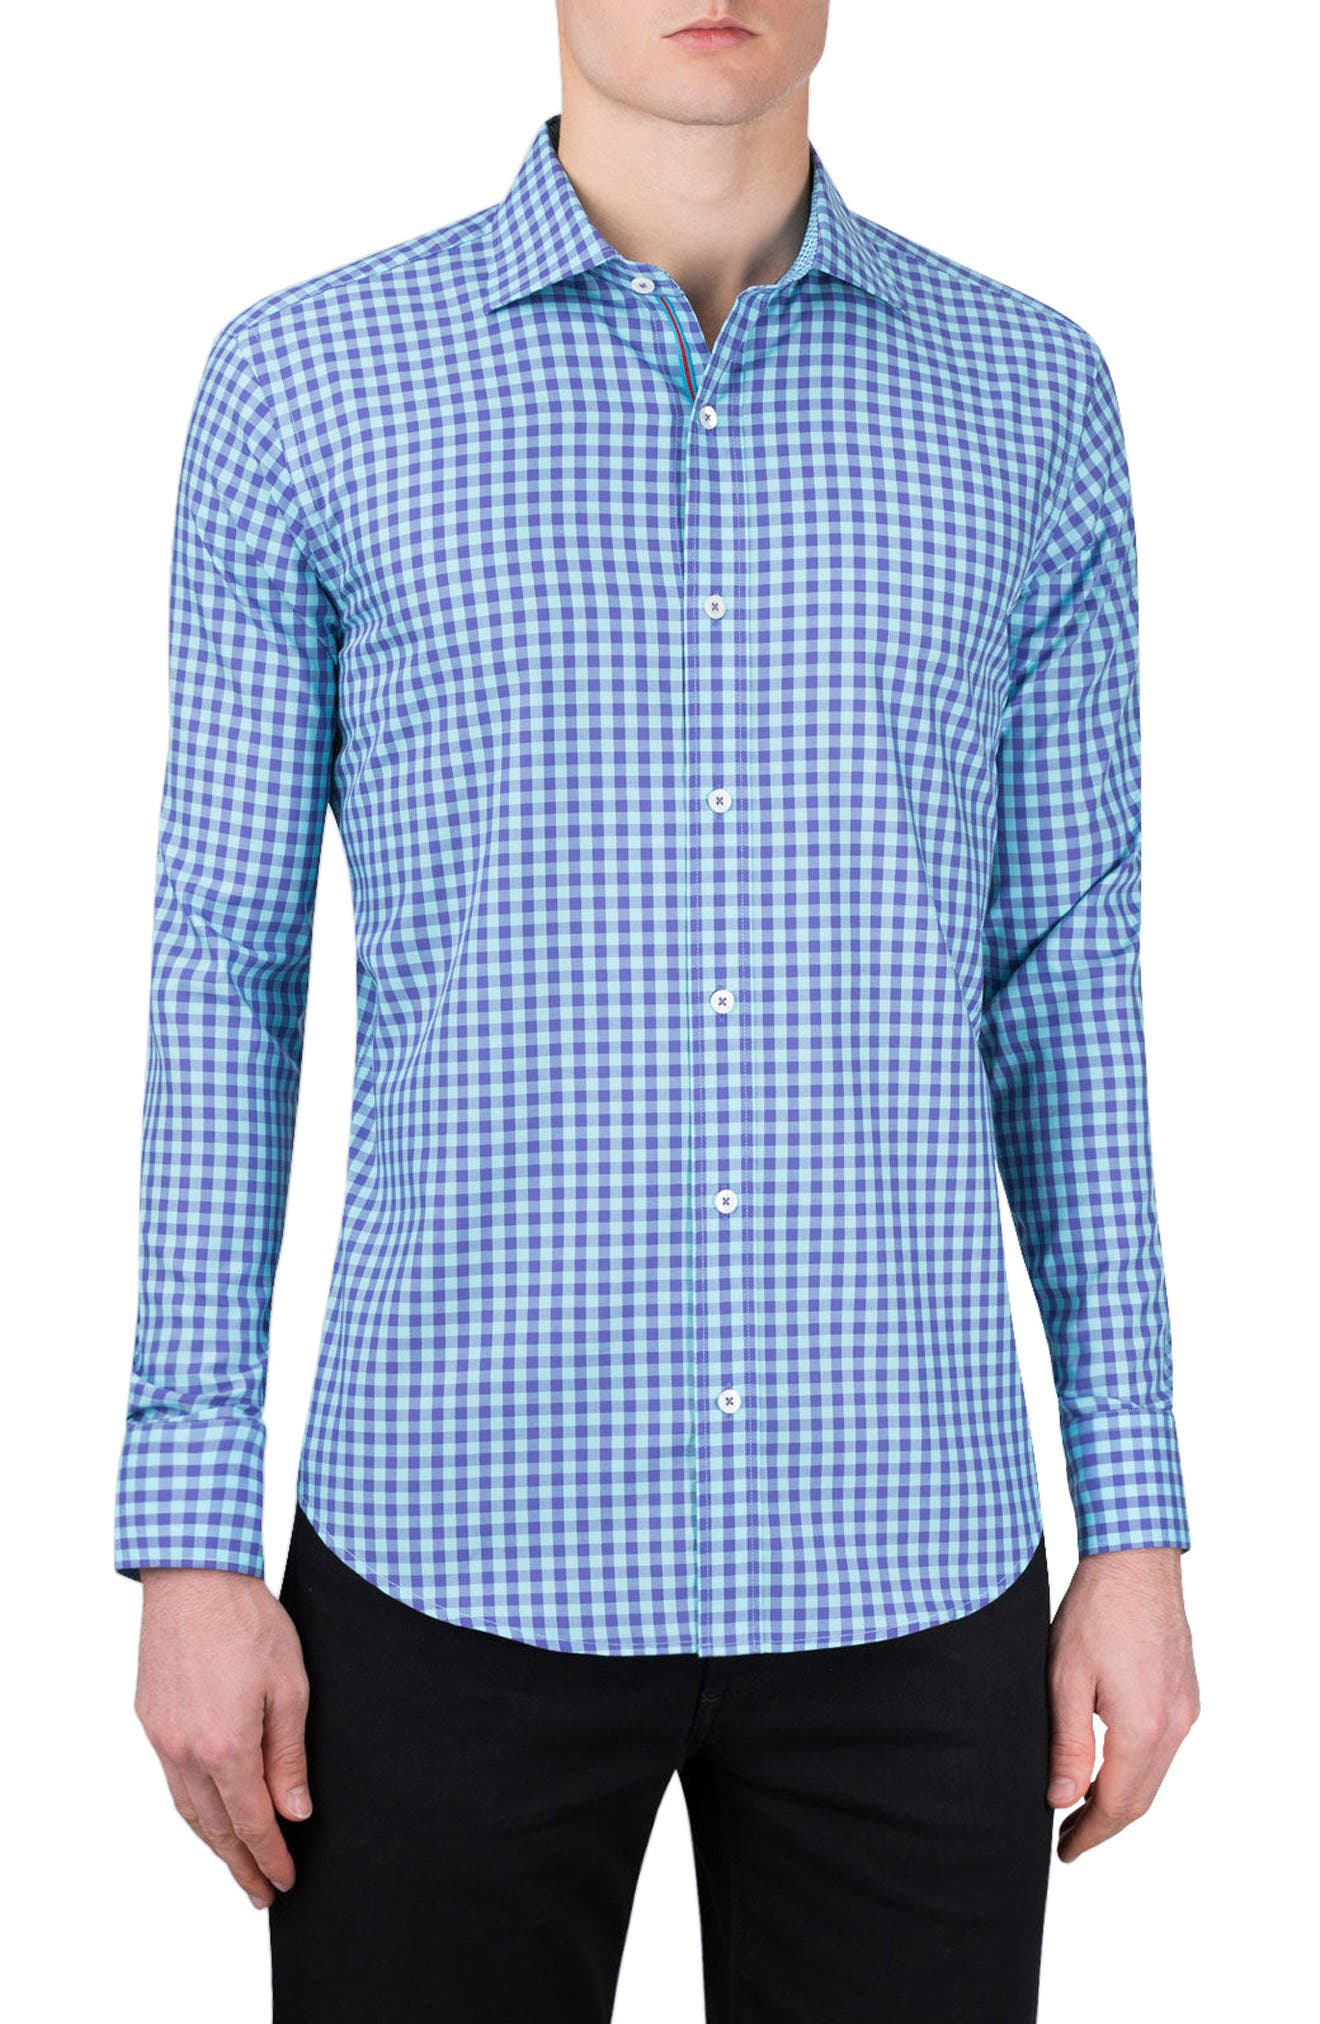 Alternate Image 1 Selected - Bugatchi Classic Fit Gingham Sport Shirt